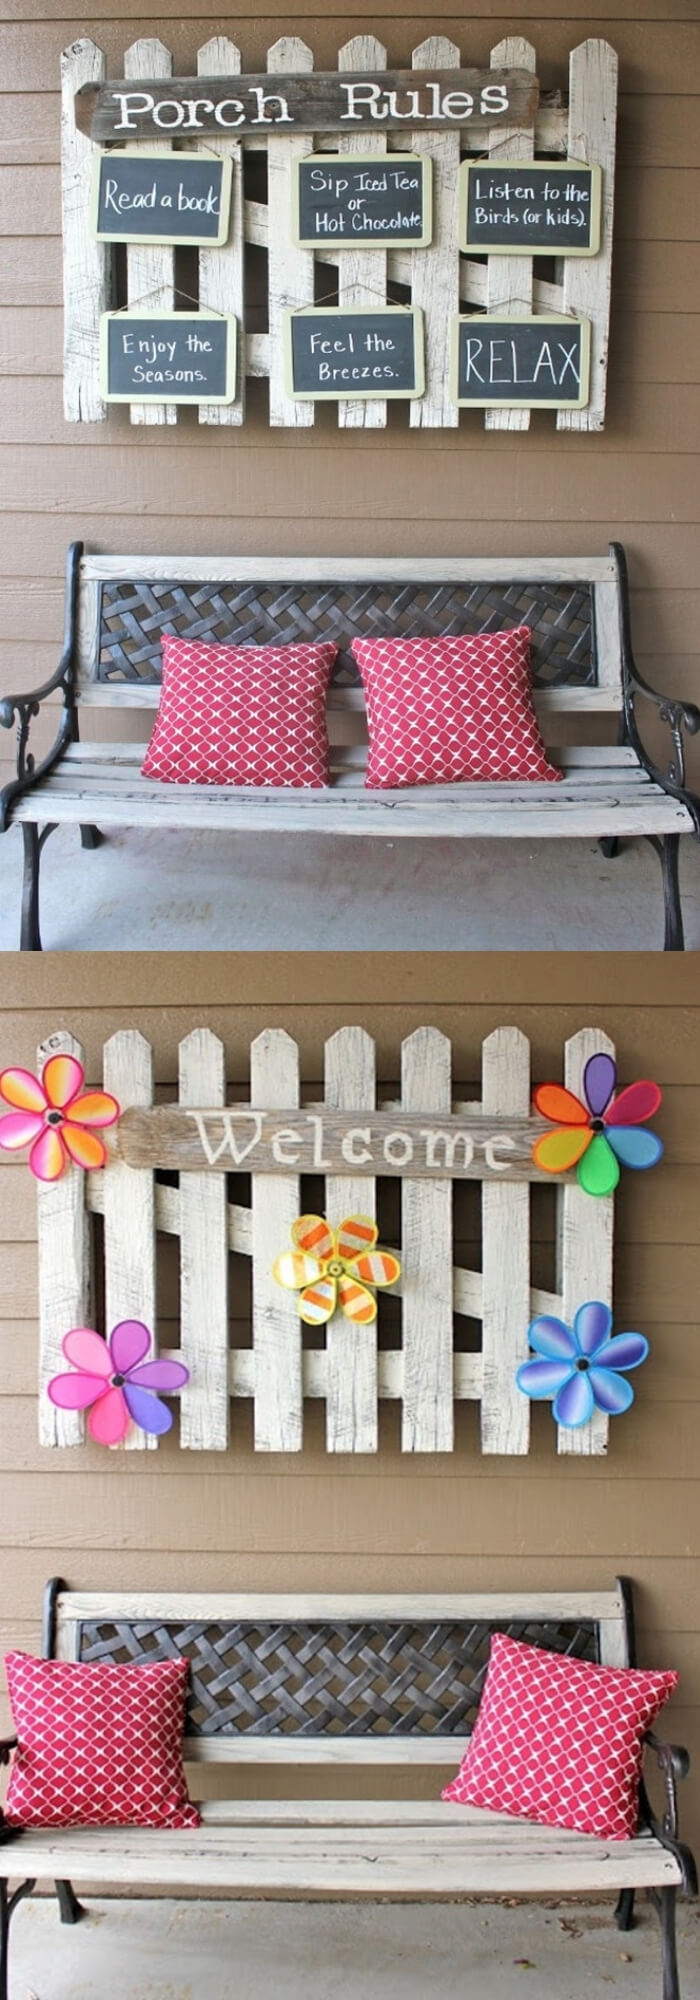 Porch Sign and Rules | Best Outdoor Wall Decor Ideas